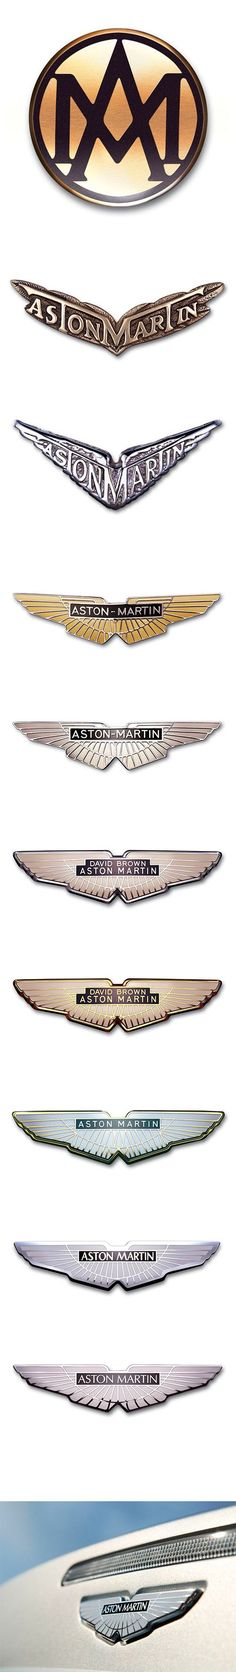 ❤ Visit ~ MACHINE Shop Café ❤ MACHINE Shop Café concepts are celebrated here. Follow Us and our Crowdfunding Campaign... October 2015 by purchasing your 'Gift Card Perks' at... www.indiegogo.com ❤ The Best of Aston Martin... ❤